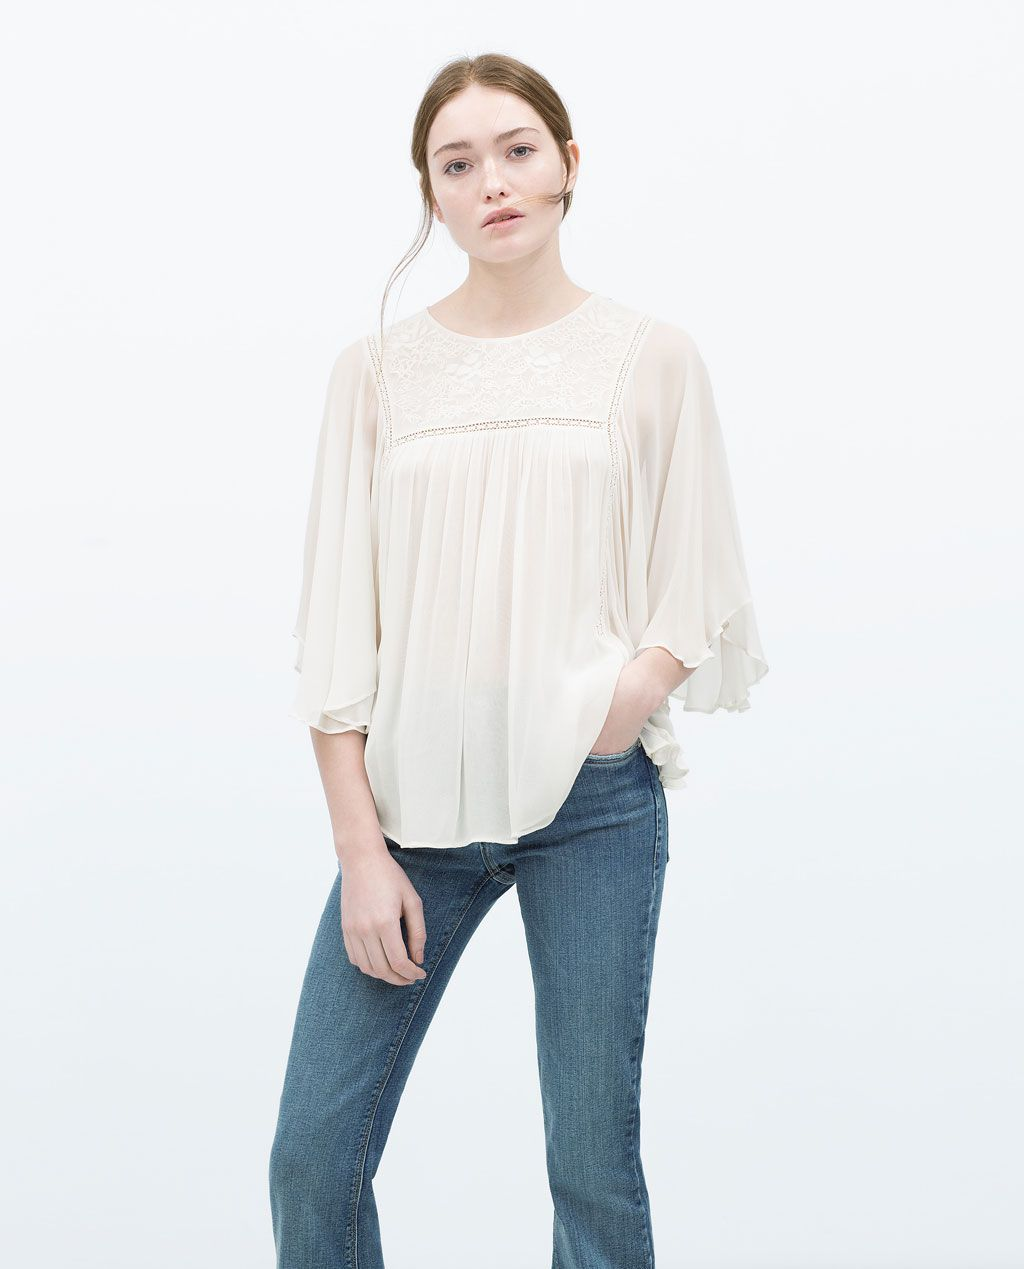 Image 2 of EMBROIDERED TOP from Zara | Portmanteau | Top bordado ...